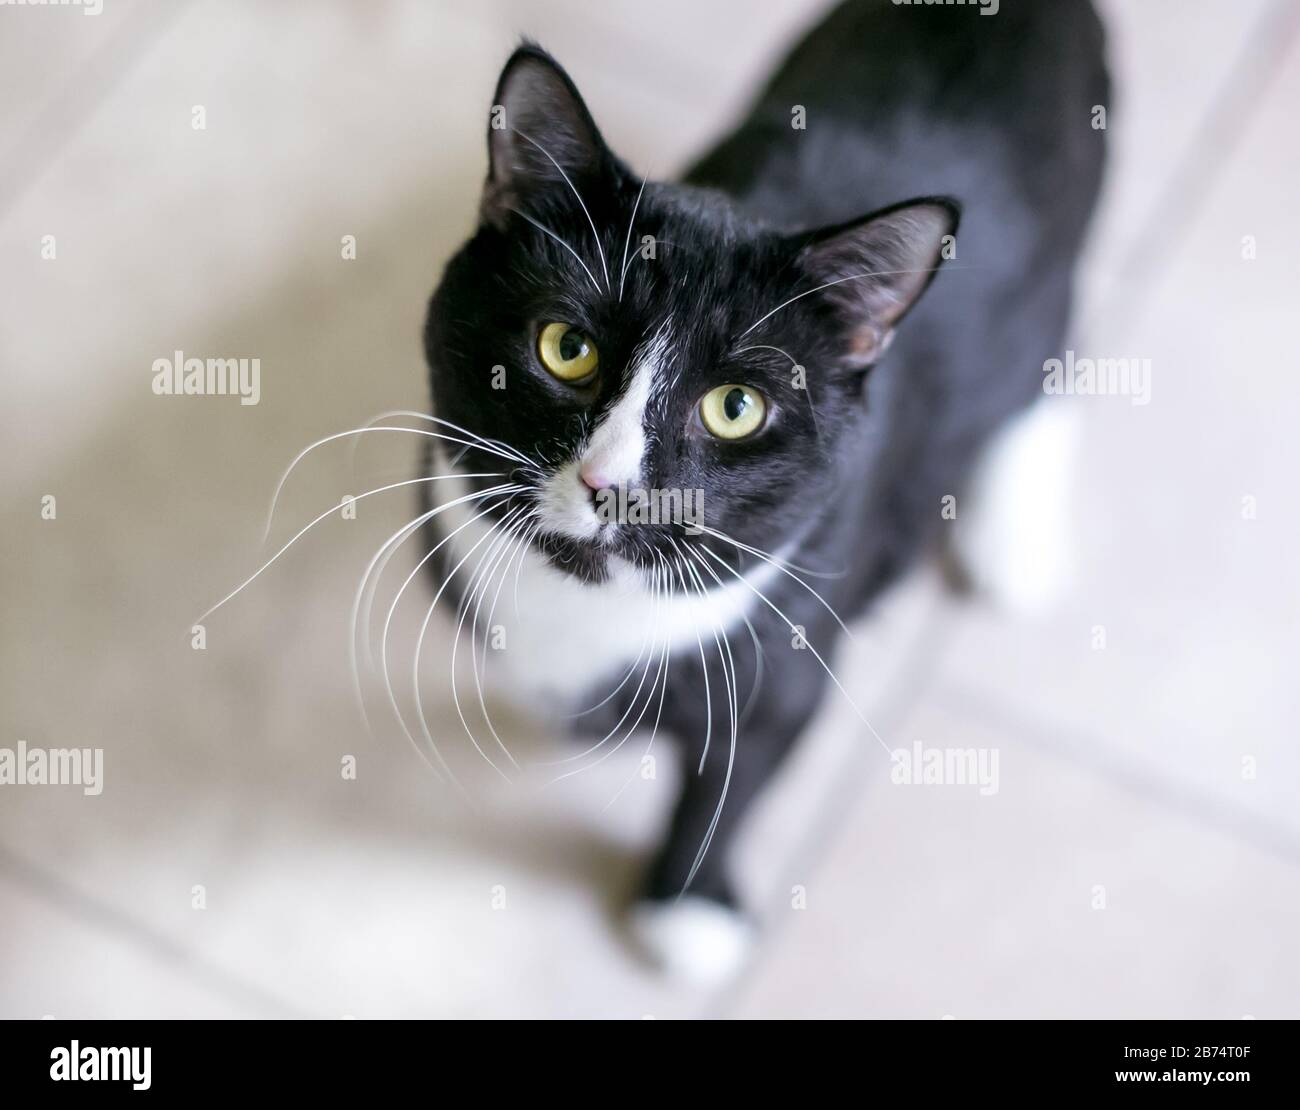 A Black And White Tuxedo Domestic Shorthair Cat With Long Whiskers Looking Up At The Camera Stock Photo Alamy